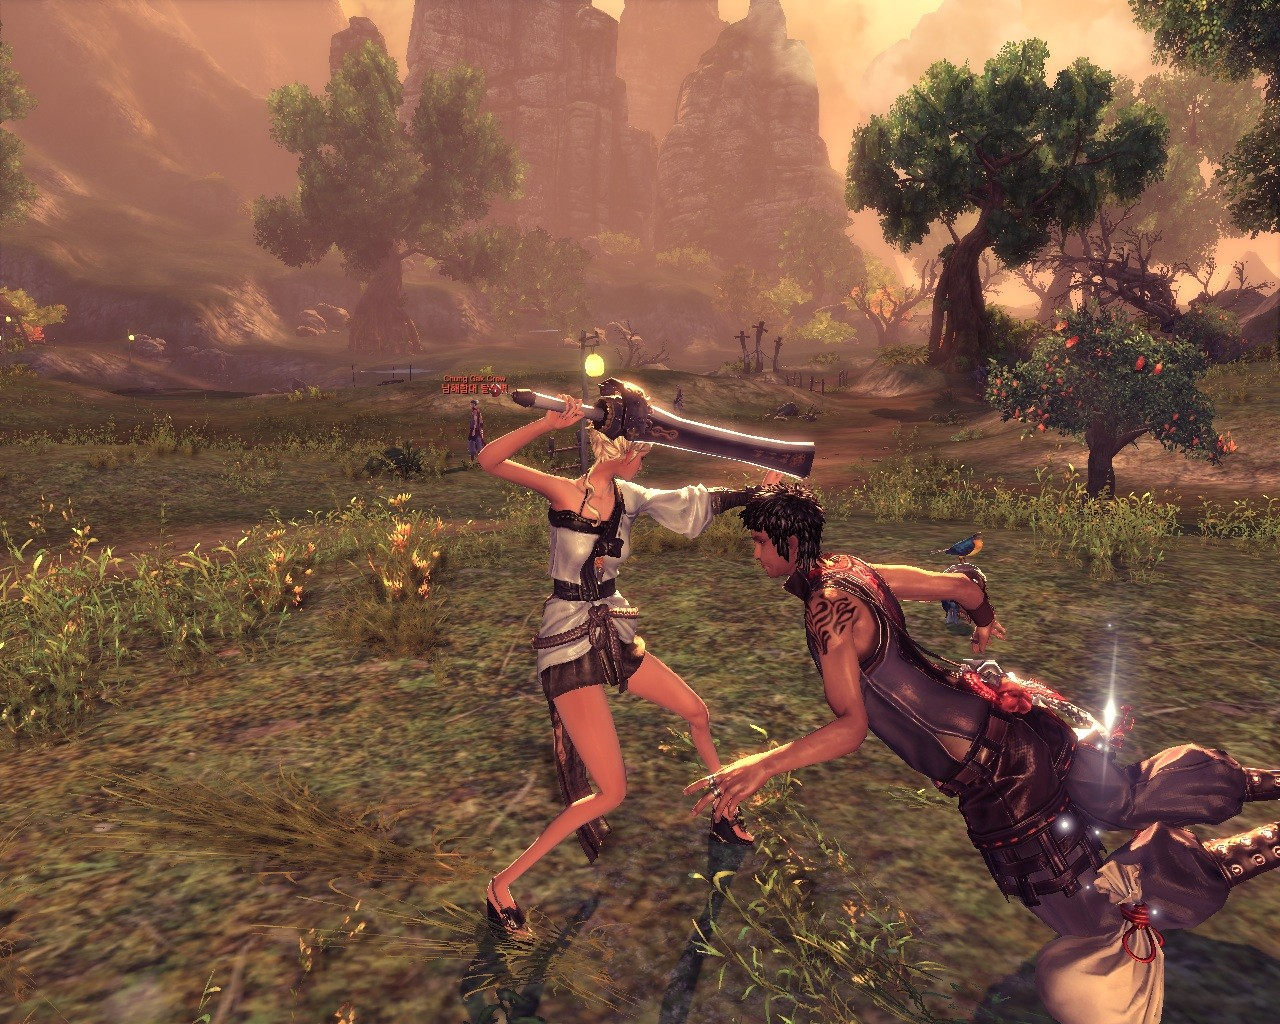 Blade & Soul - Oh! What's there? I am so going down ..